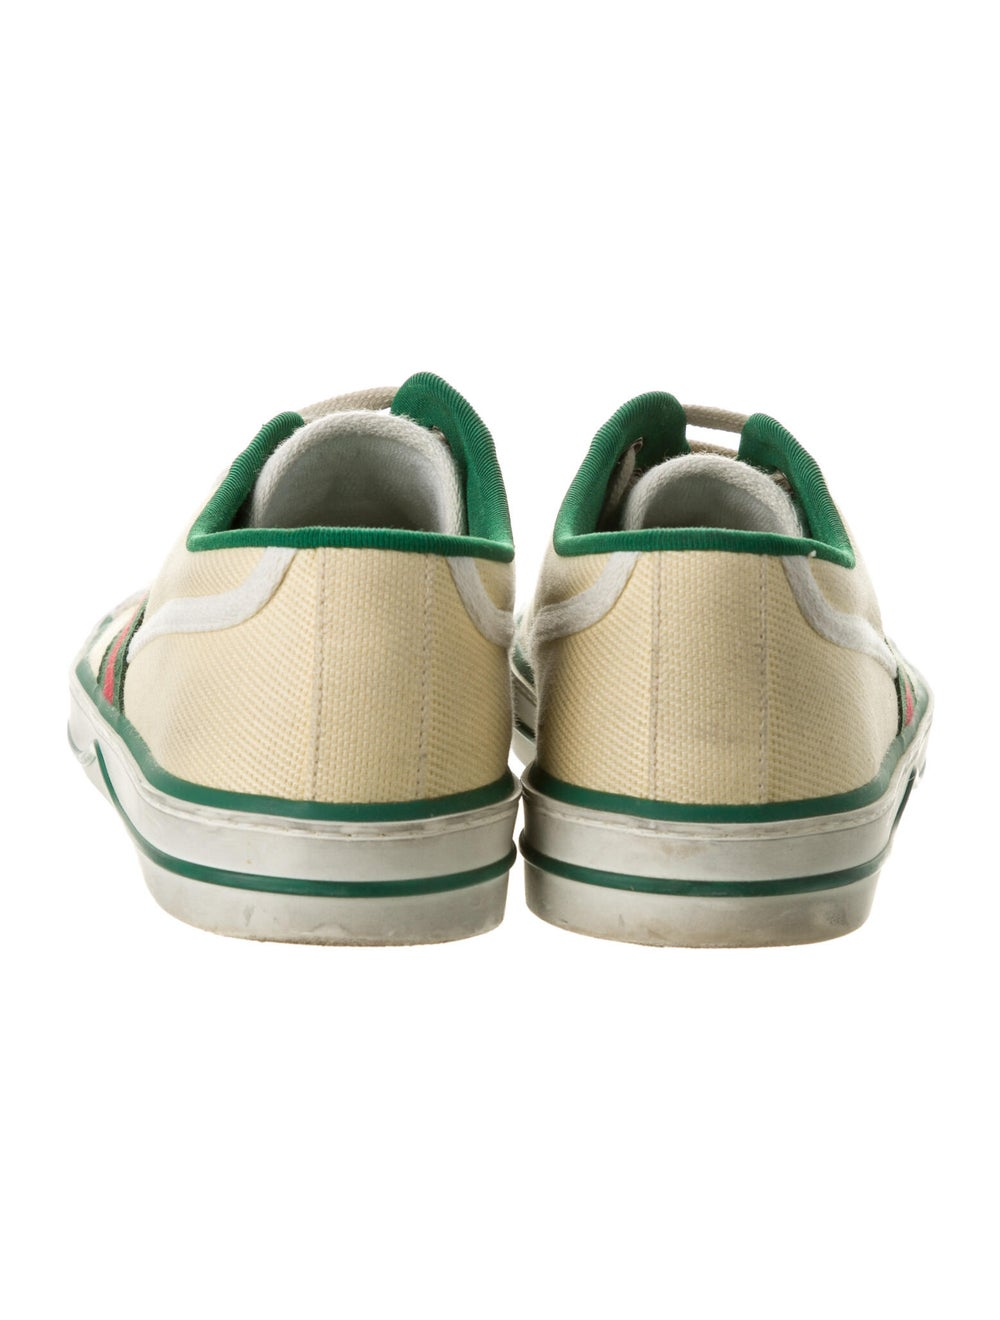 Gucci 1977 Tennis Sneakers - image 4